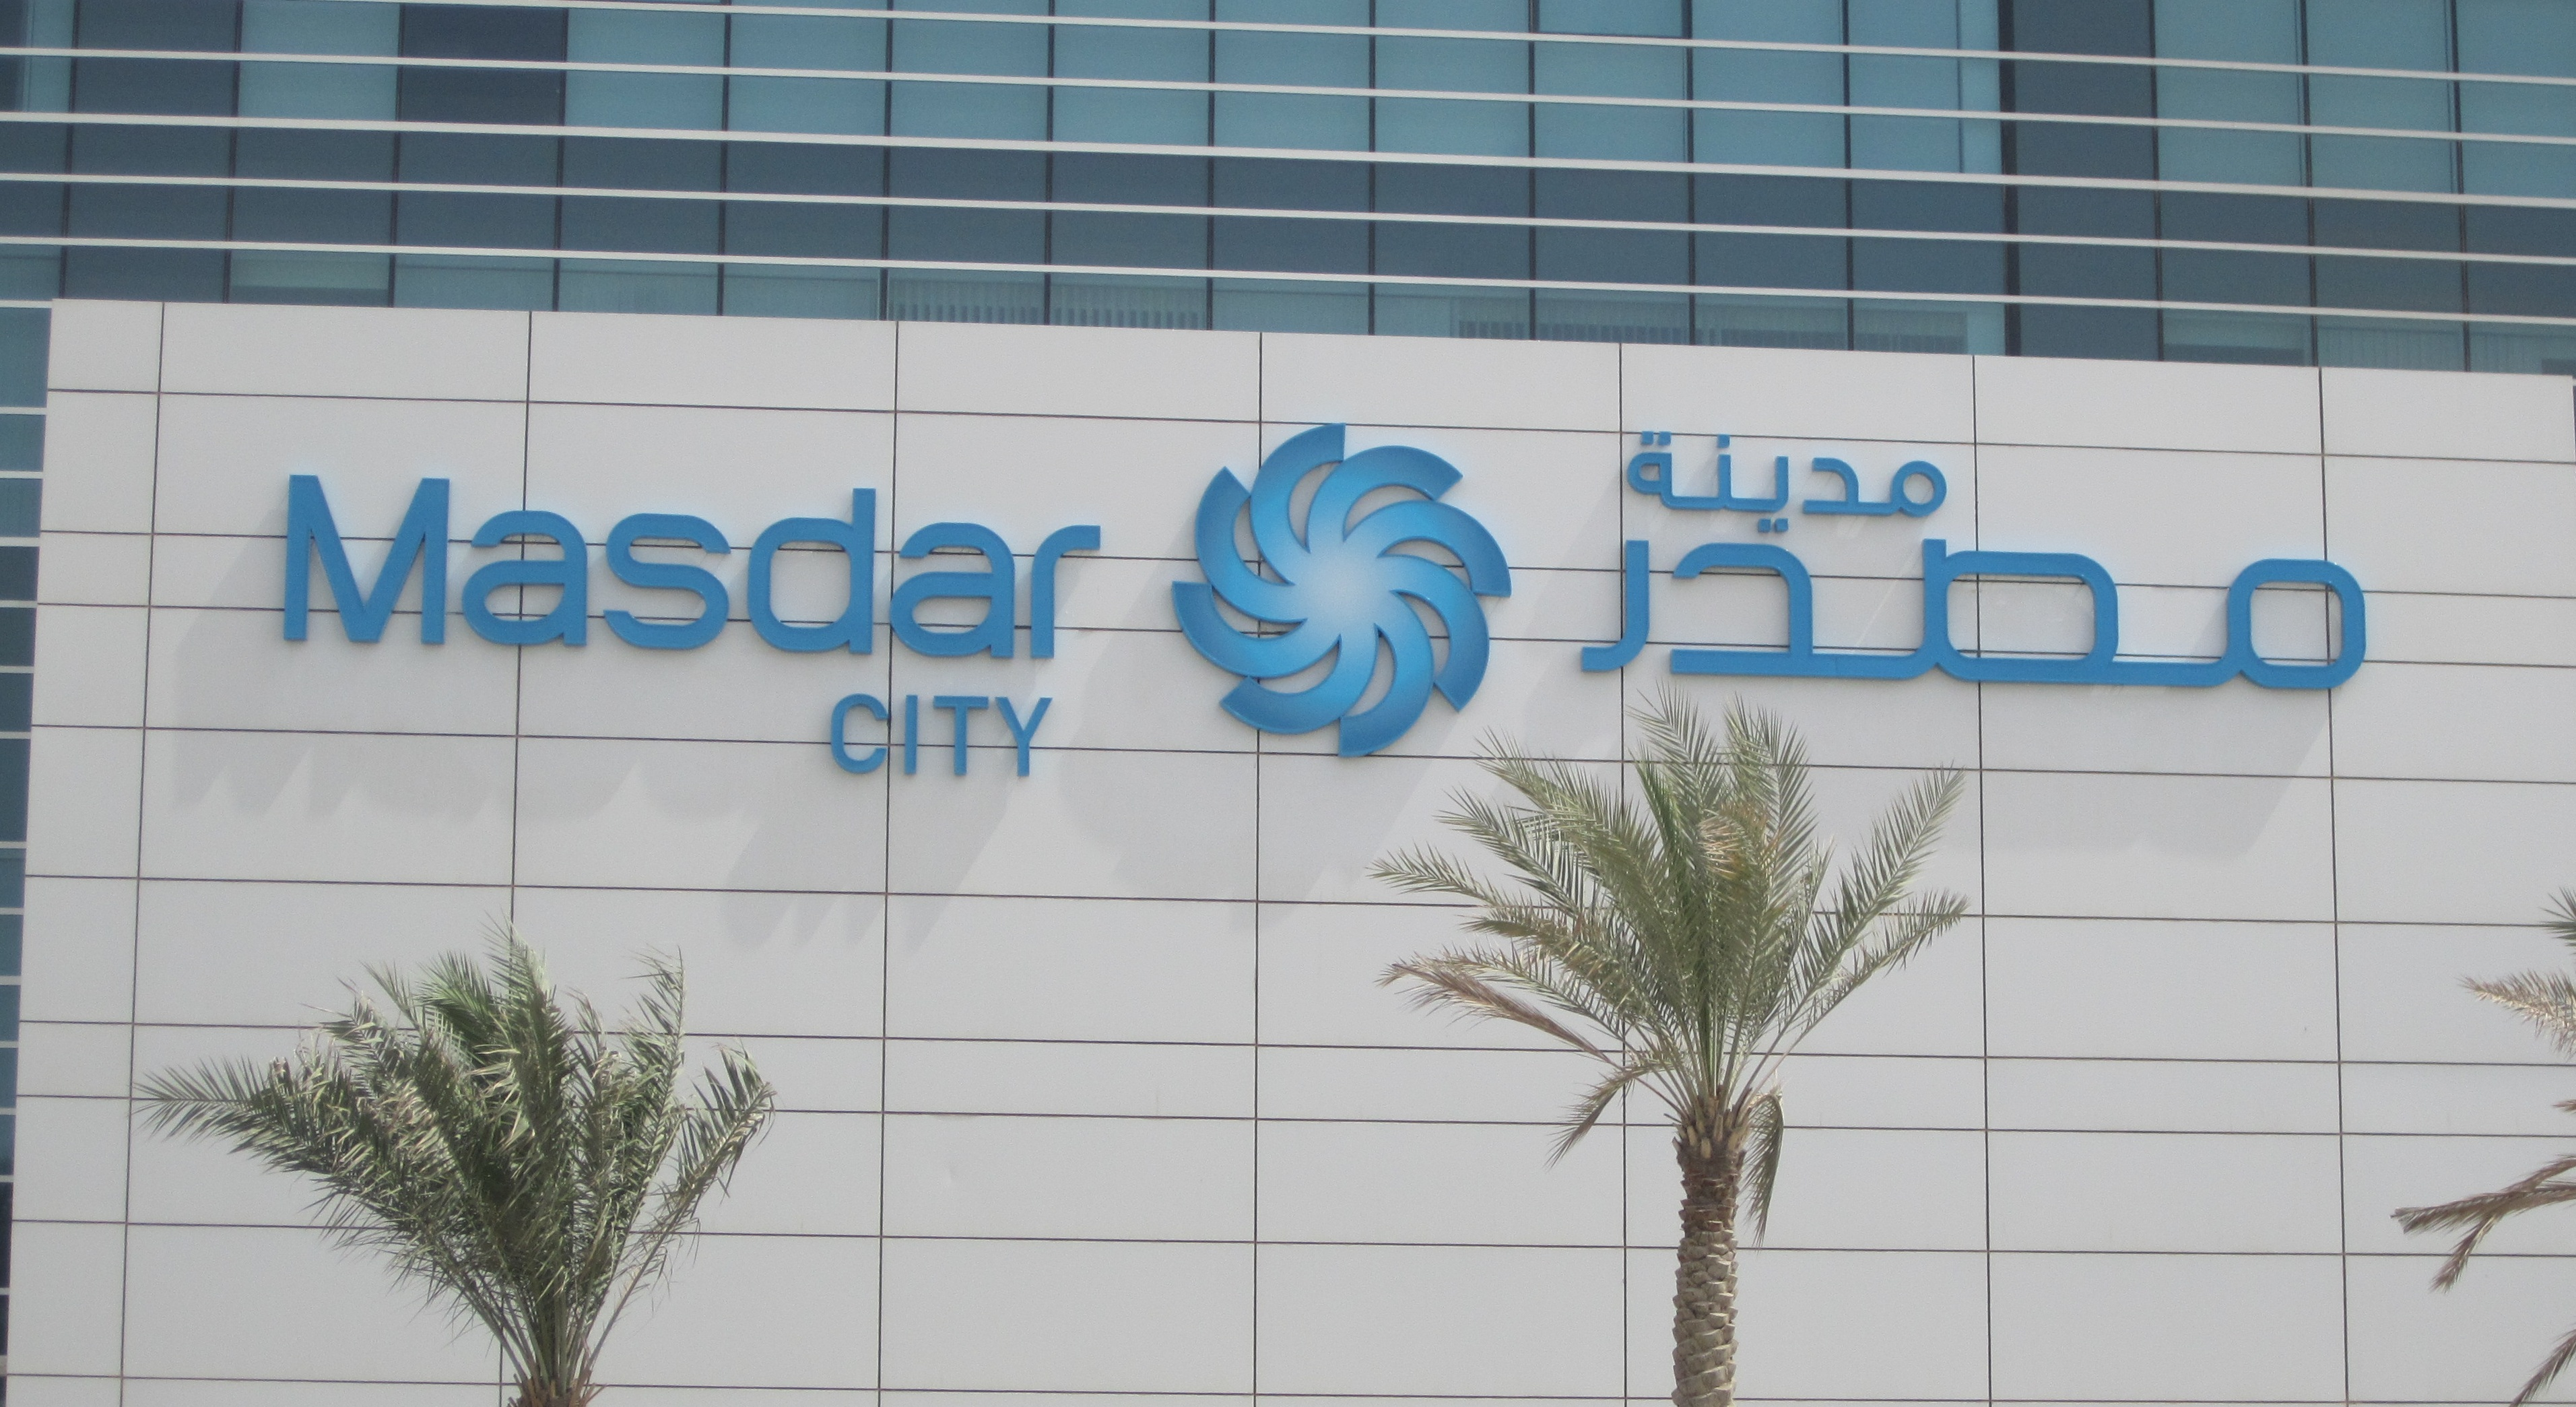 <h2>Masdar City - External Sign</h2><br/>